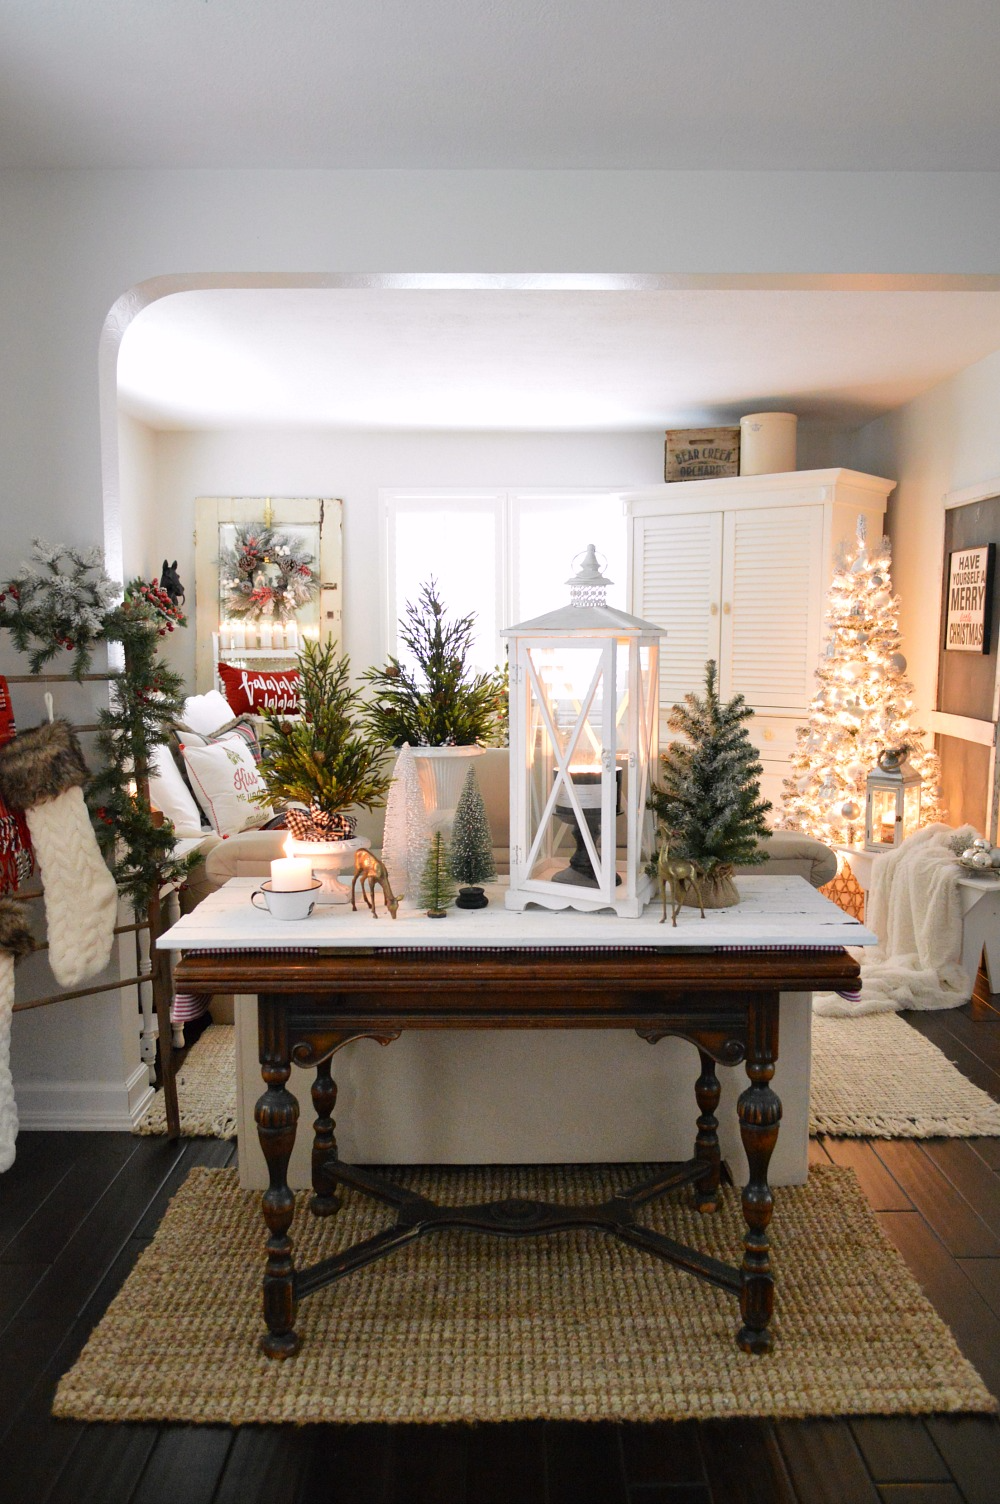 Holiday Housewalk Christmas at the cottage #christmashometour #holidayhousewalk #christmasdecoratingideas #christmashome #decoratingideas #holidaydecorating #cozychristmas #foxhollowcottage